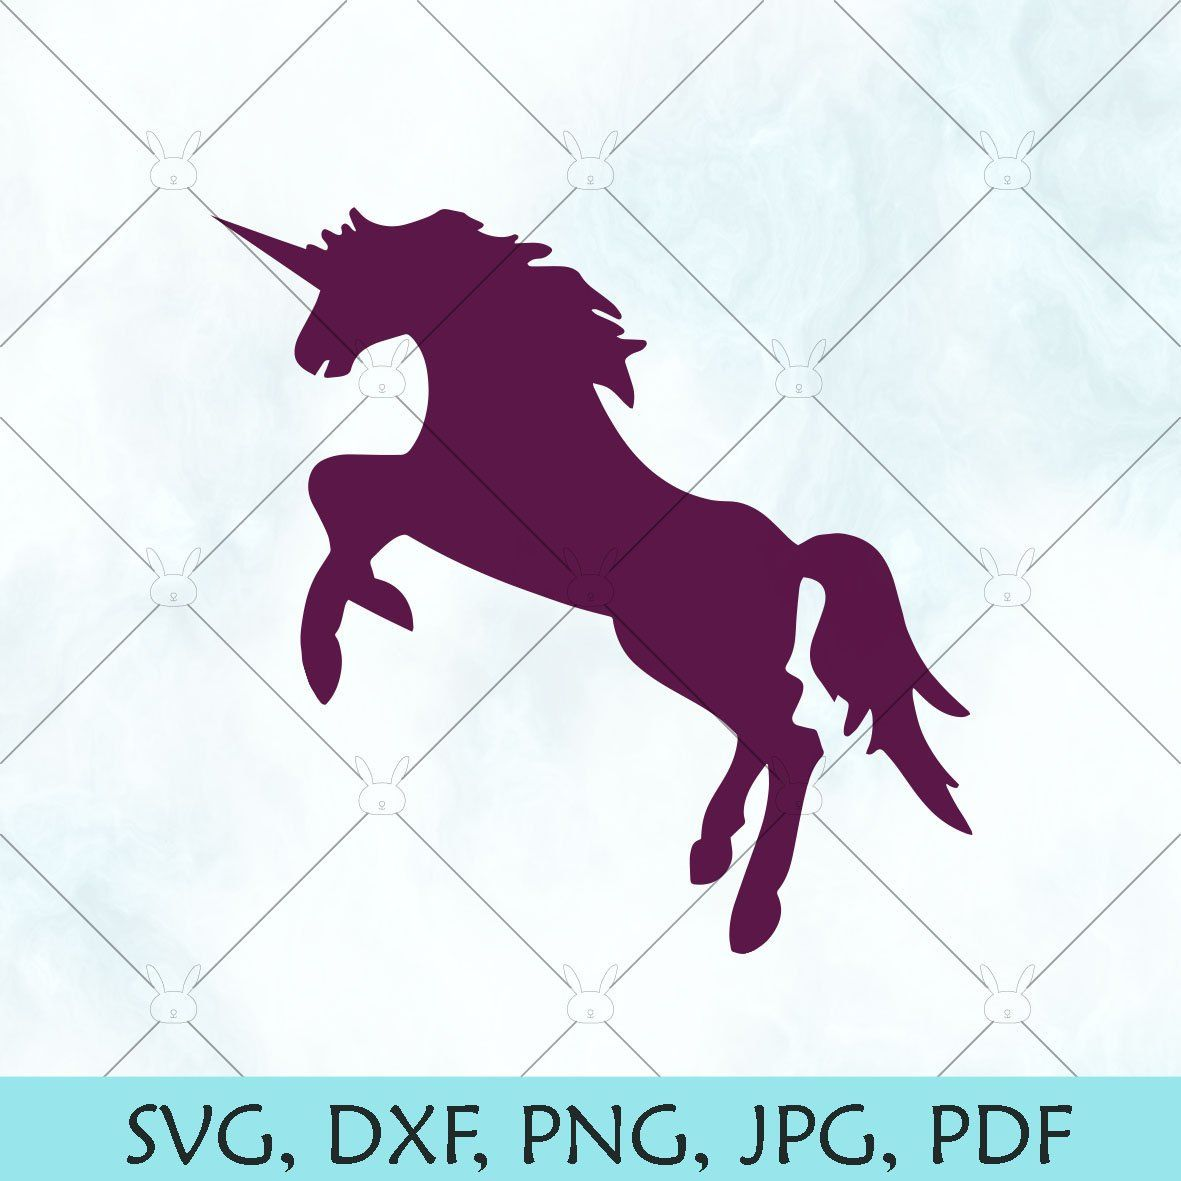 Unicorn SVG / Unicorn outline SVG / Unicorn Silhouette